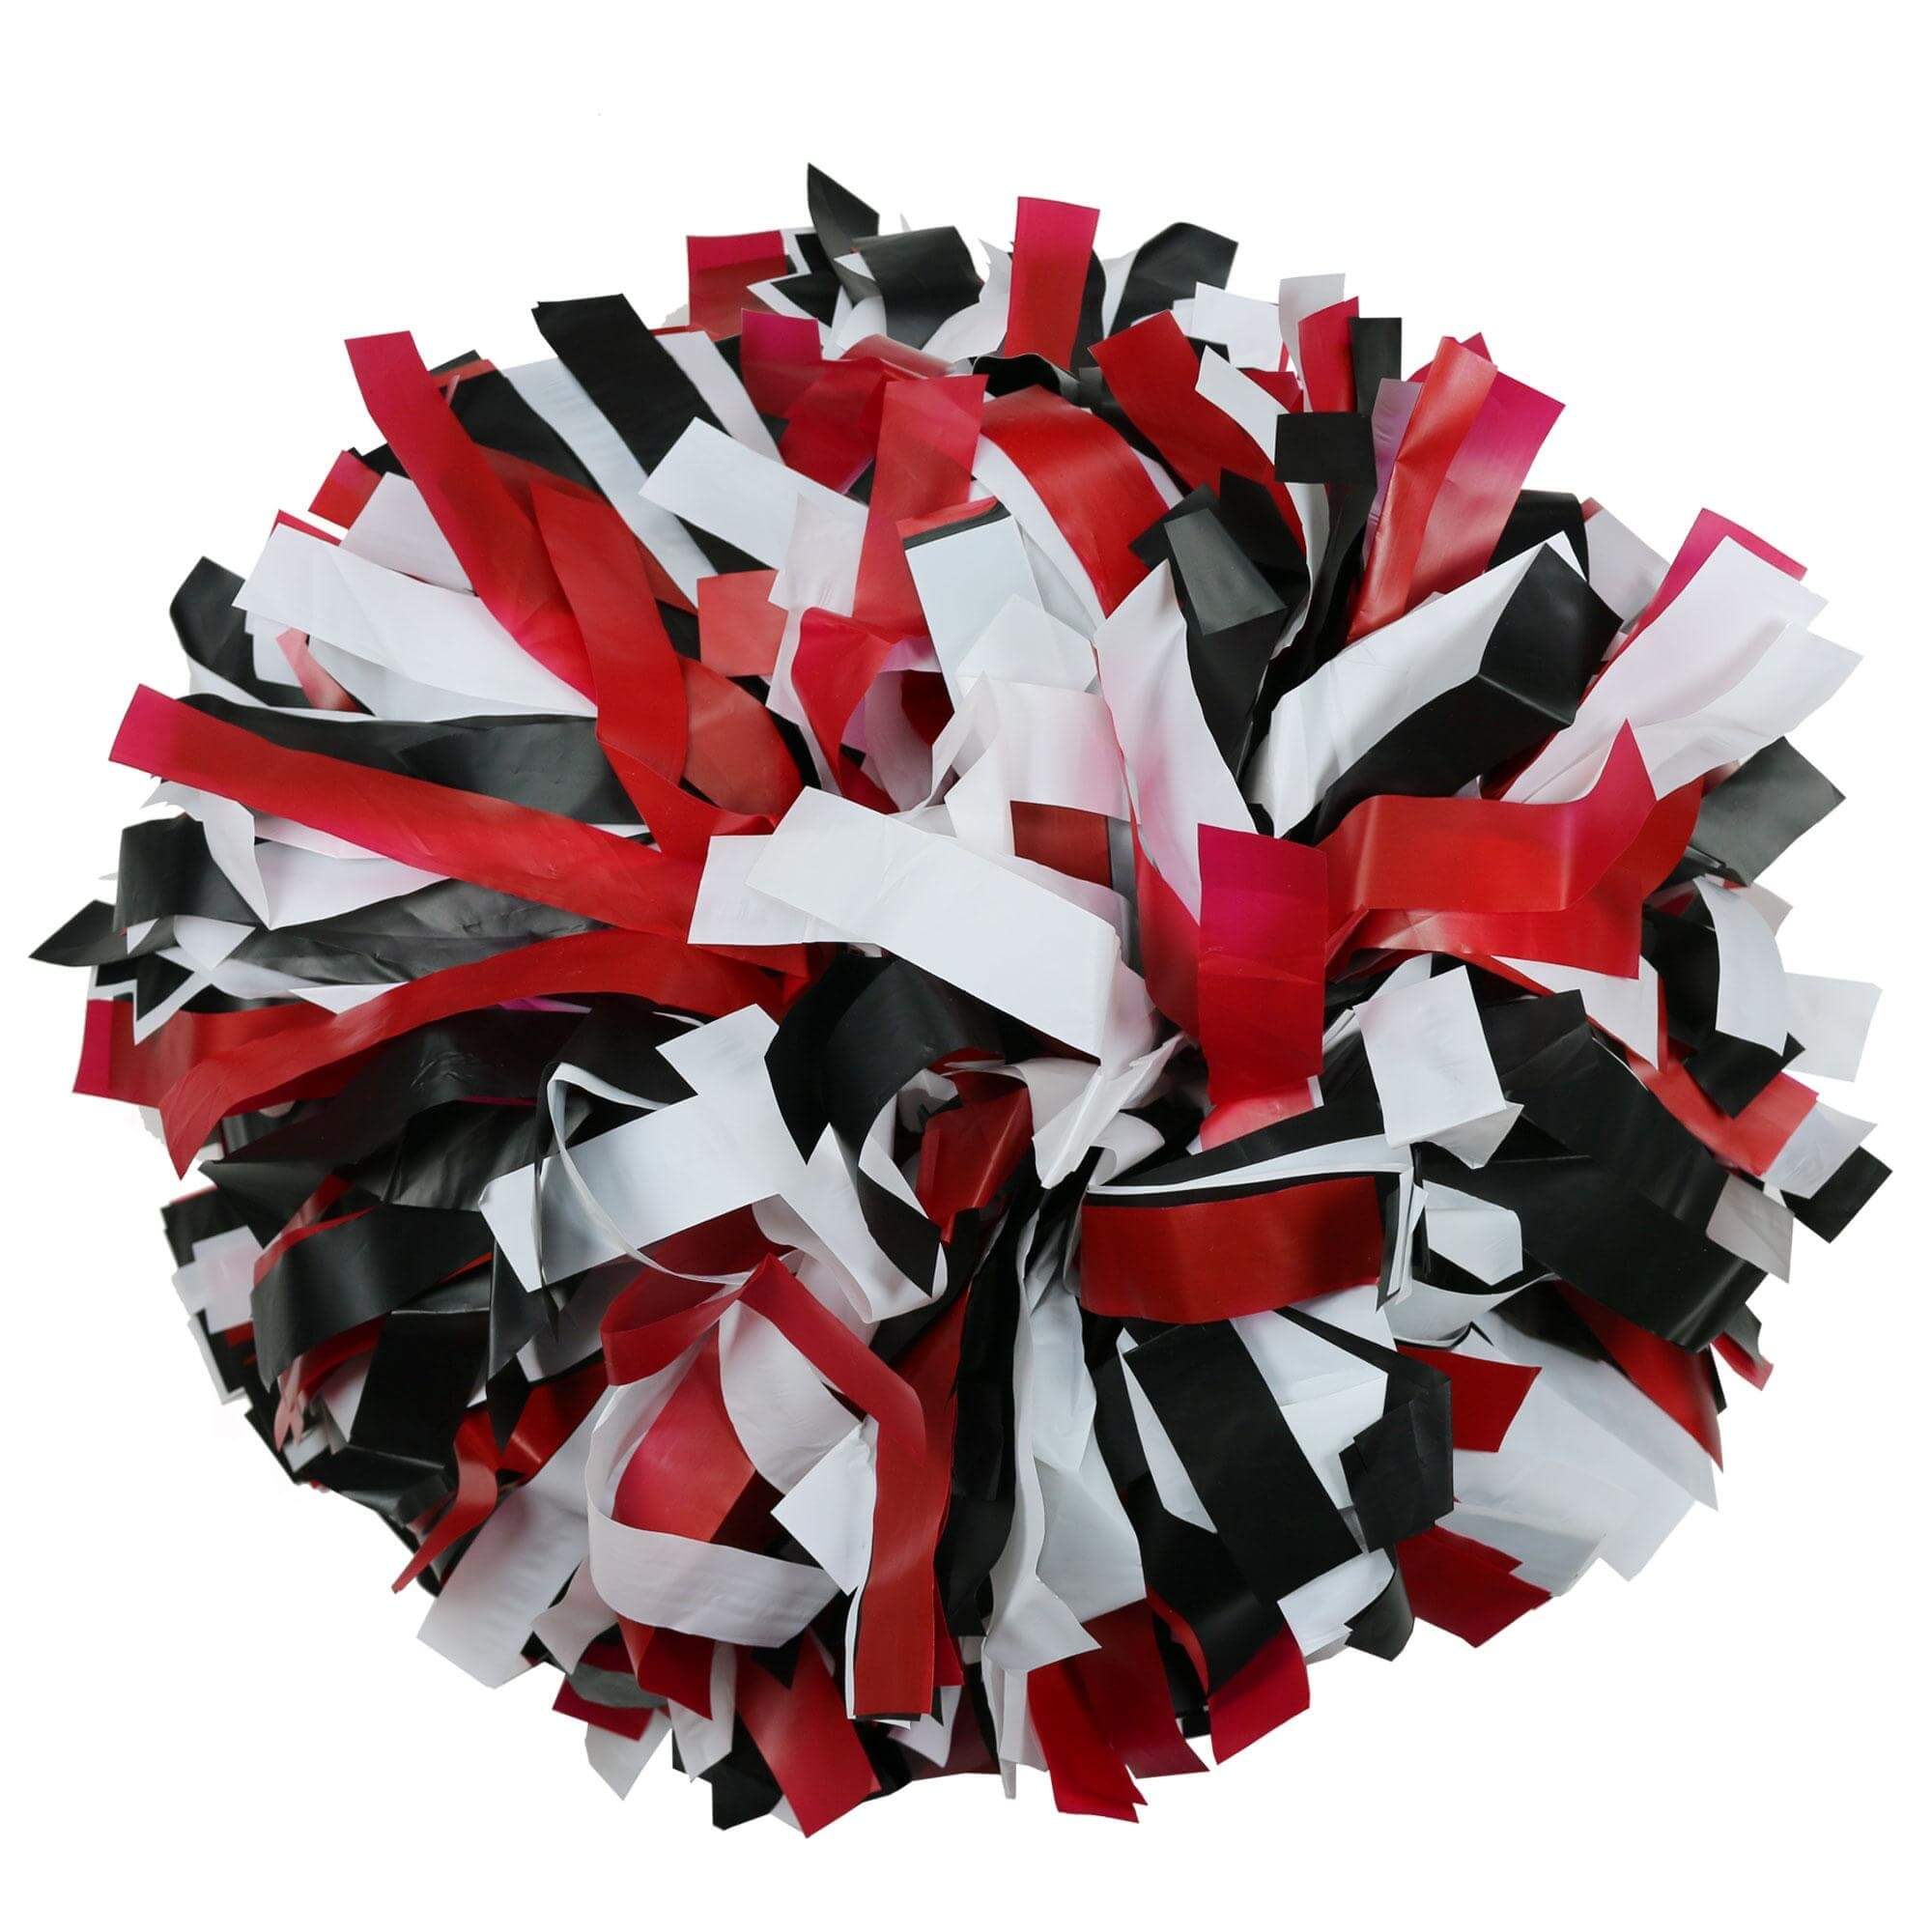 Danzcue Black/Red/White Plastic Poms